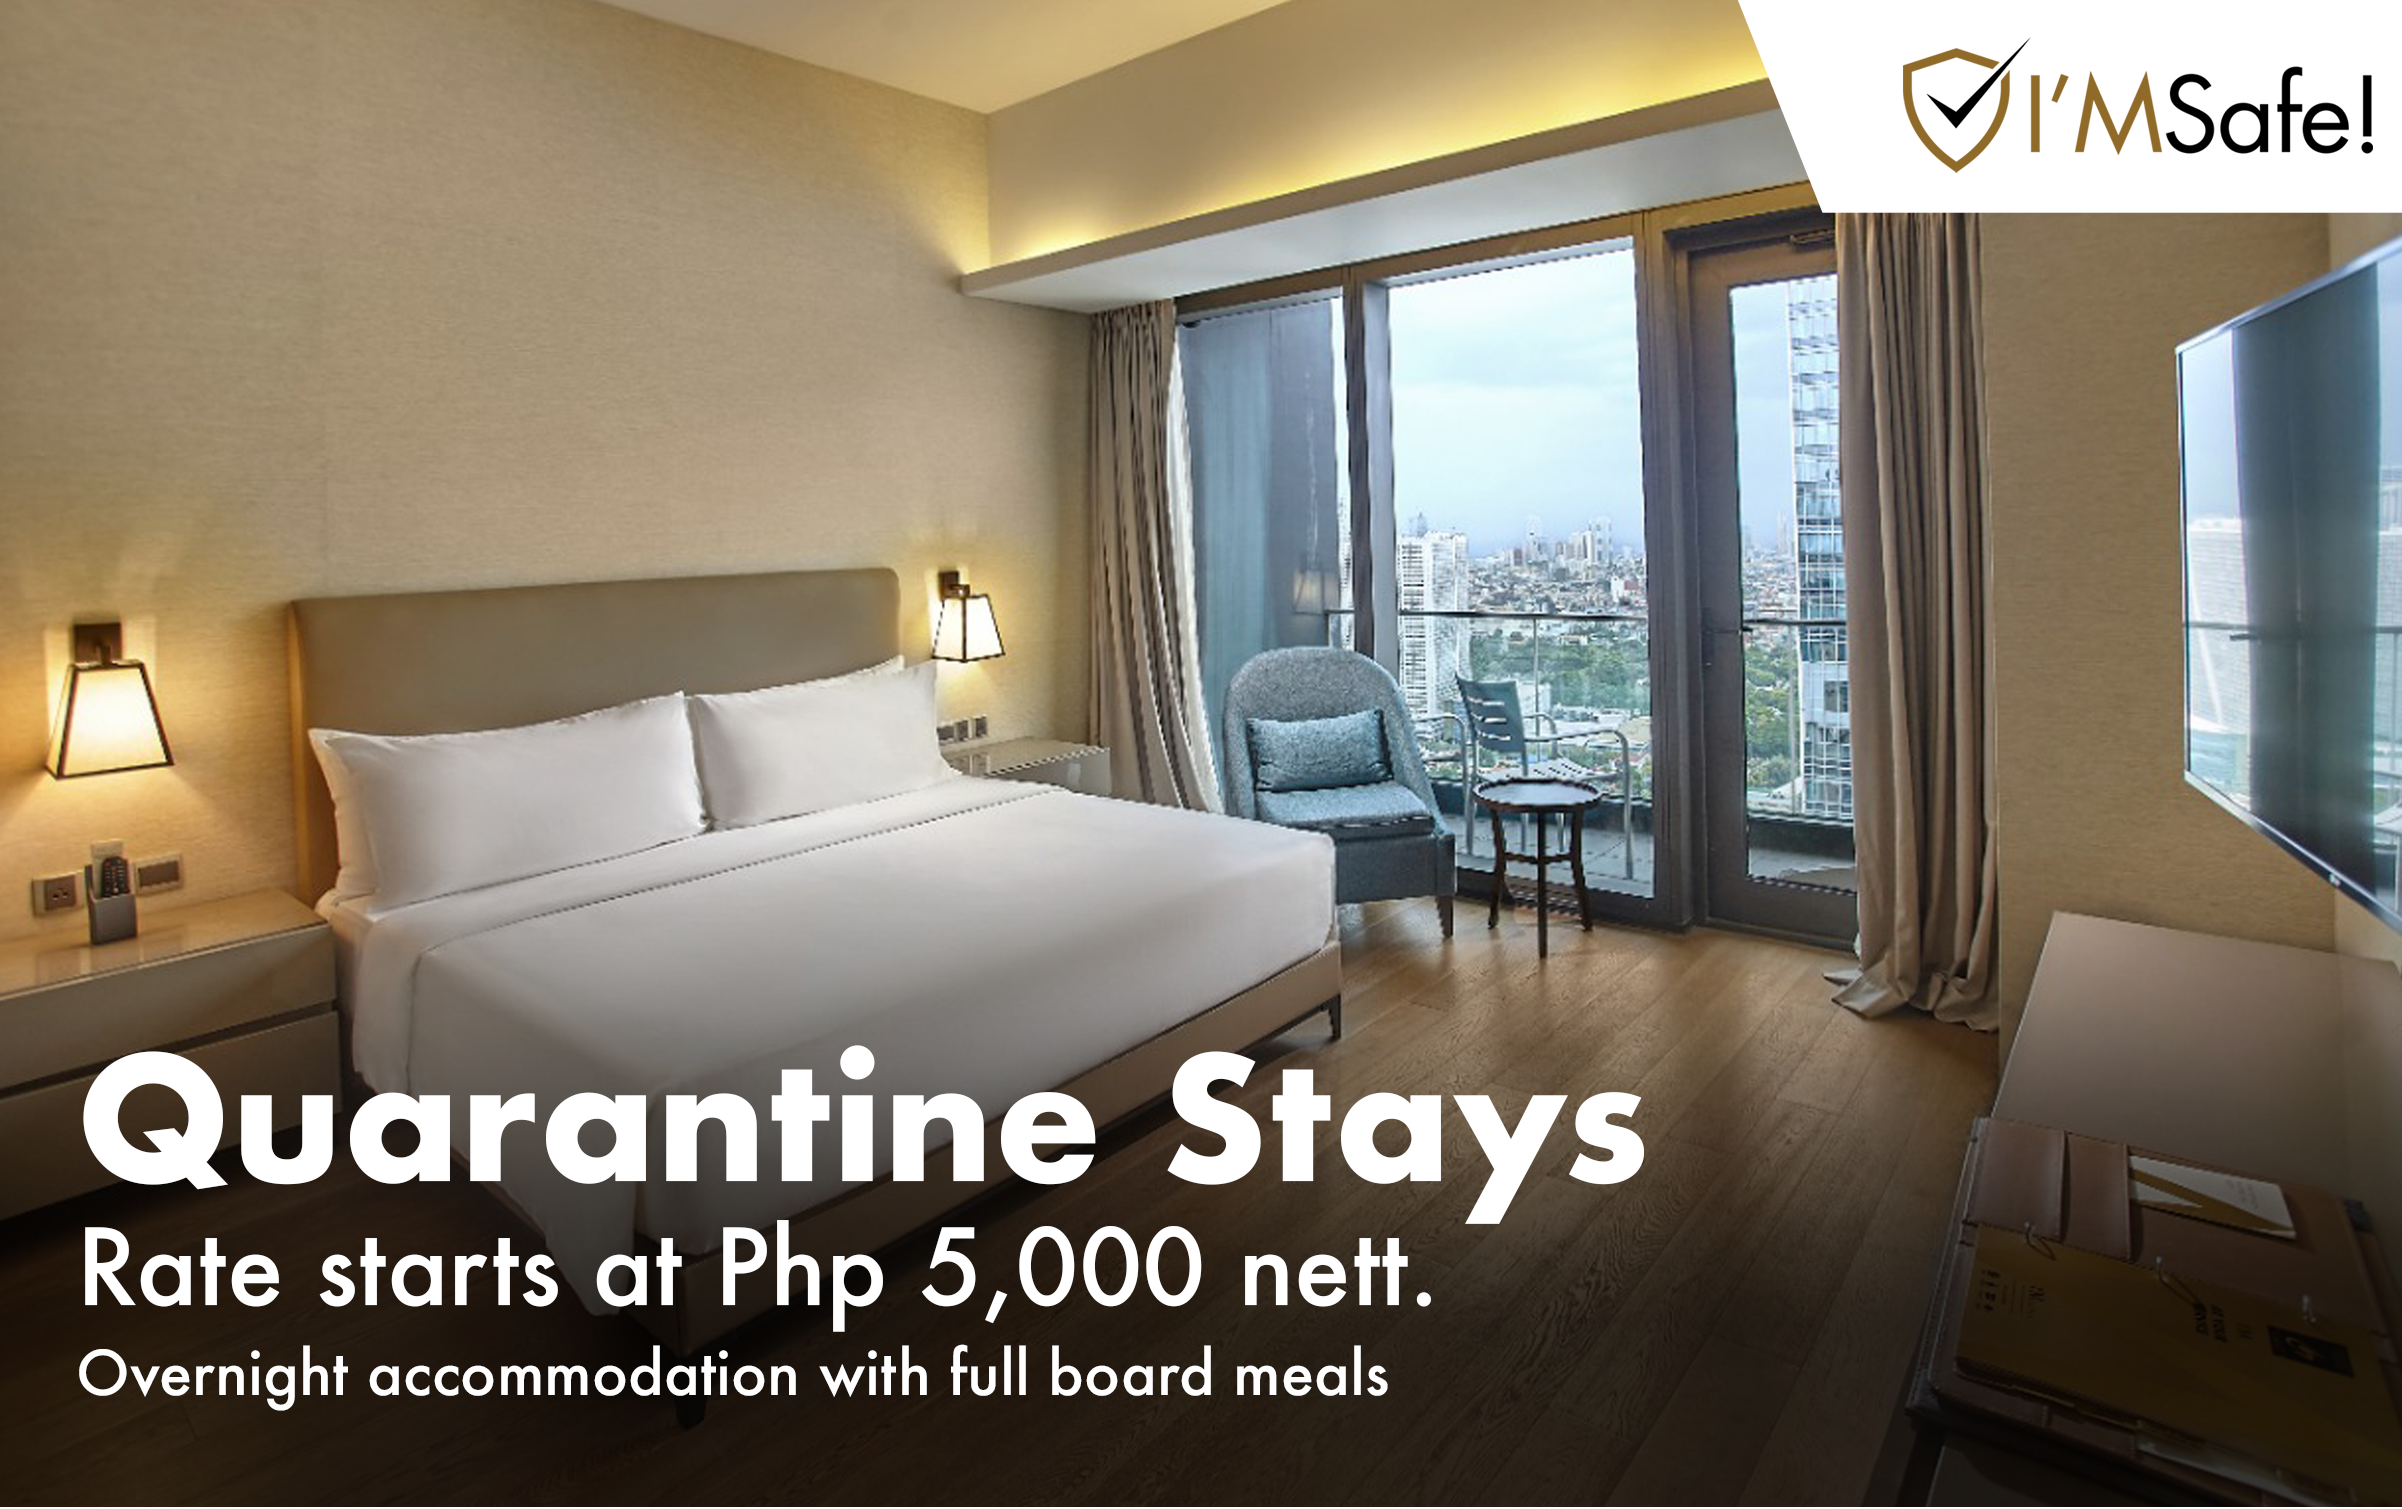 im-hotel-offer-quarantine-stay-promo